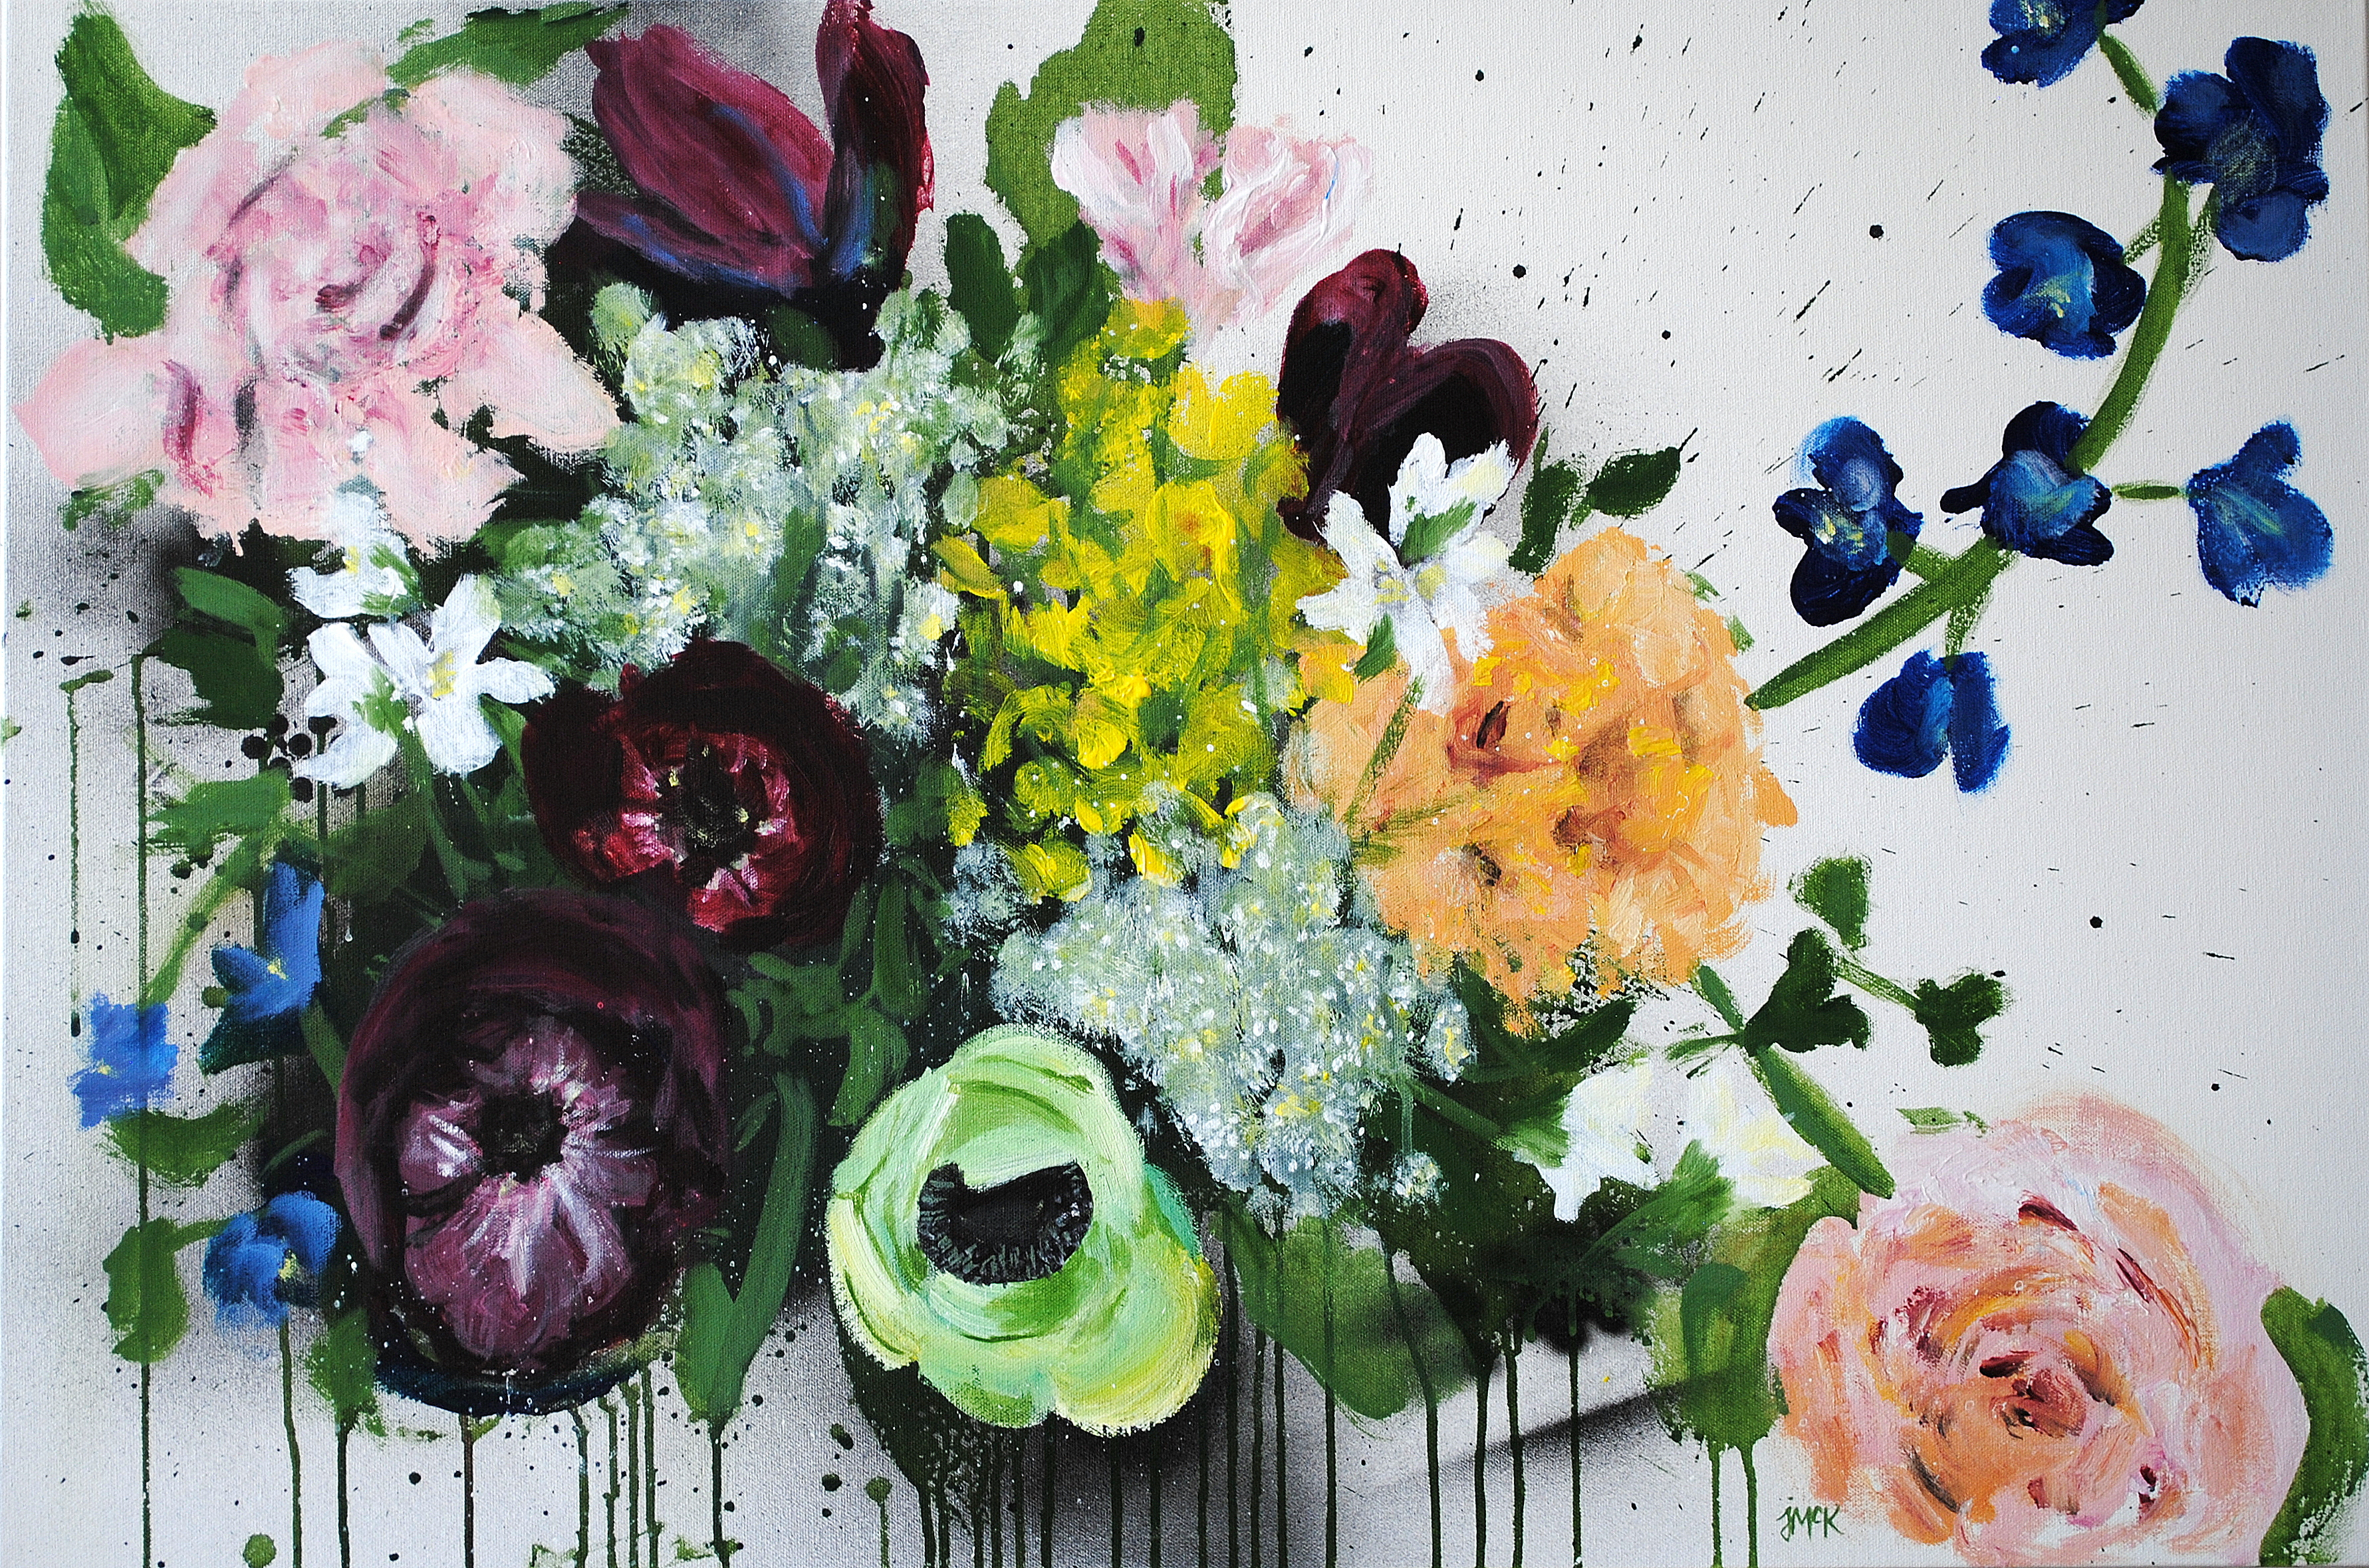 Colorful, abstract painting of a variety of flowers